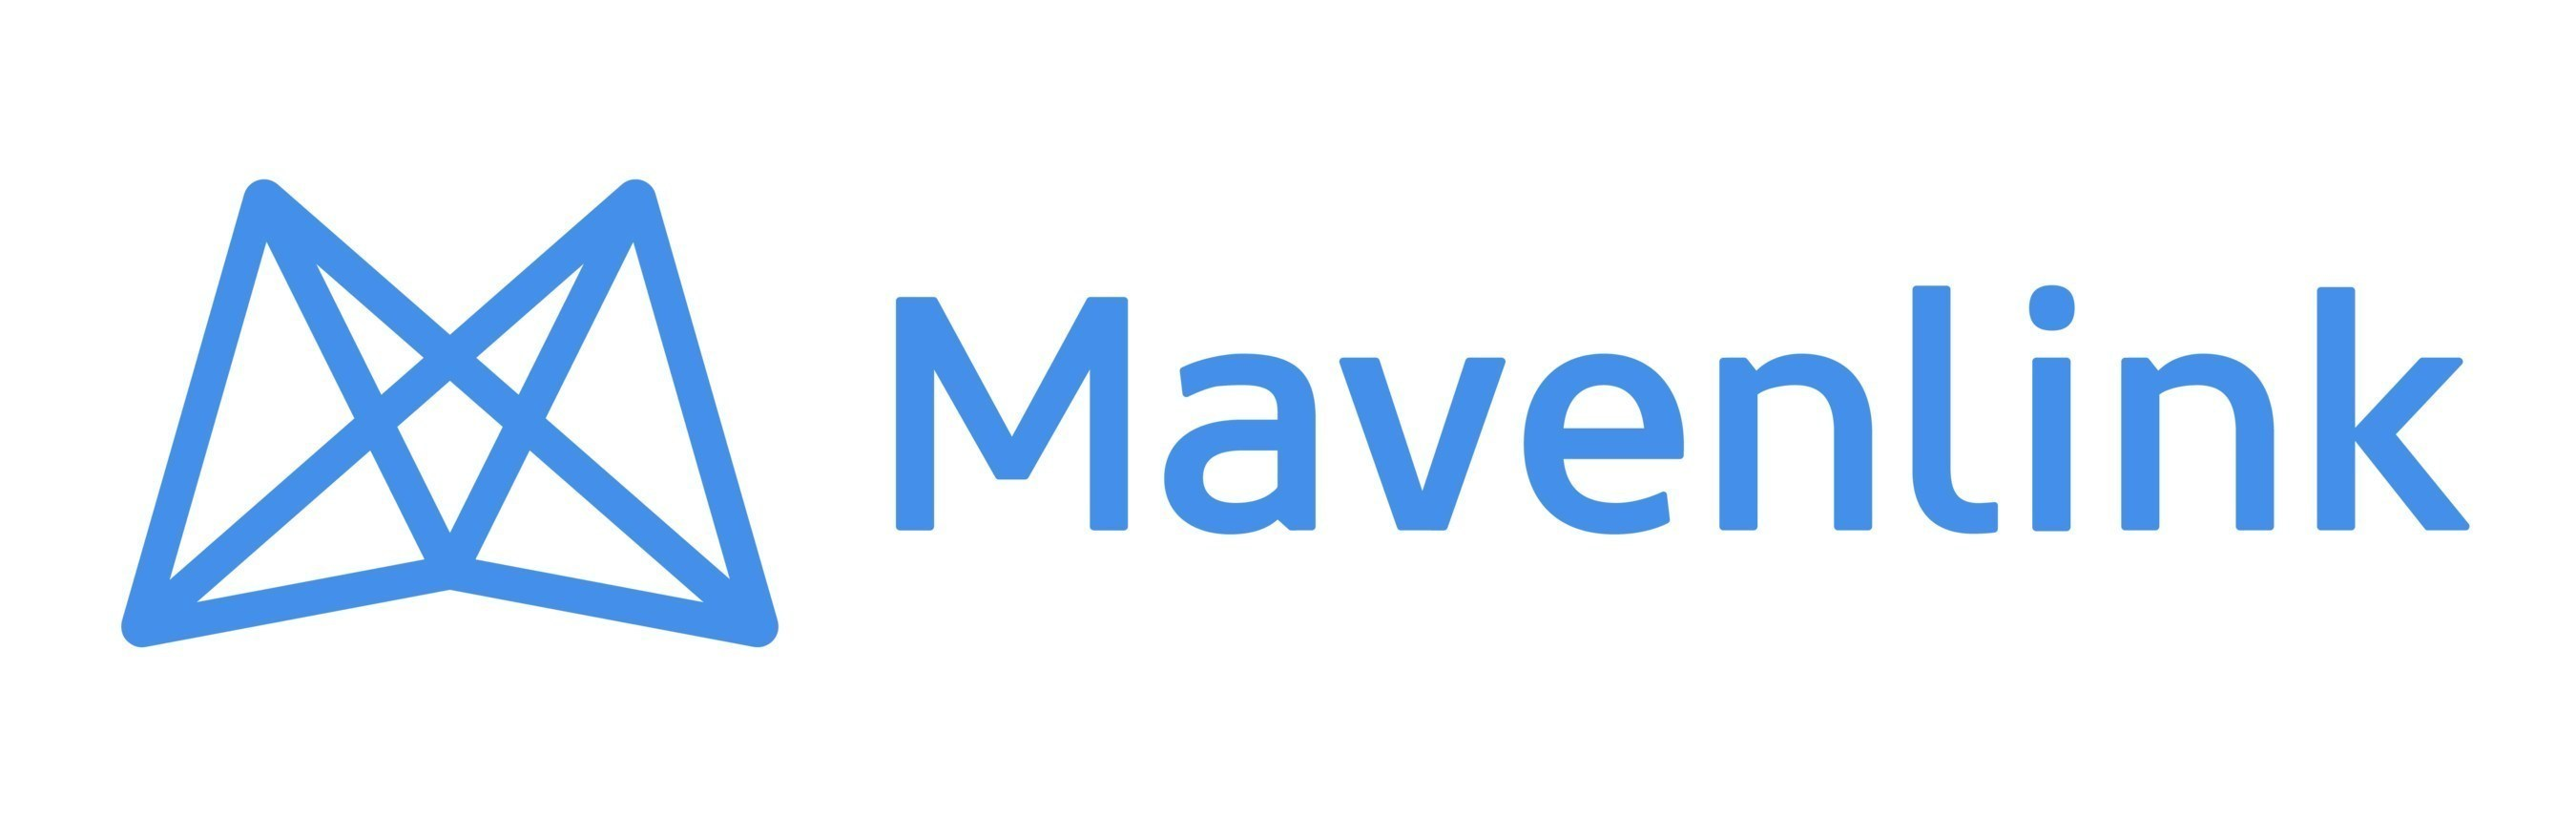 Mavenlink, the Leading SaaS Platform for the Professional Services Market, Raises $39 Million to Fuel Technology and Expansion